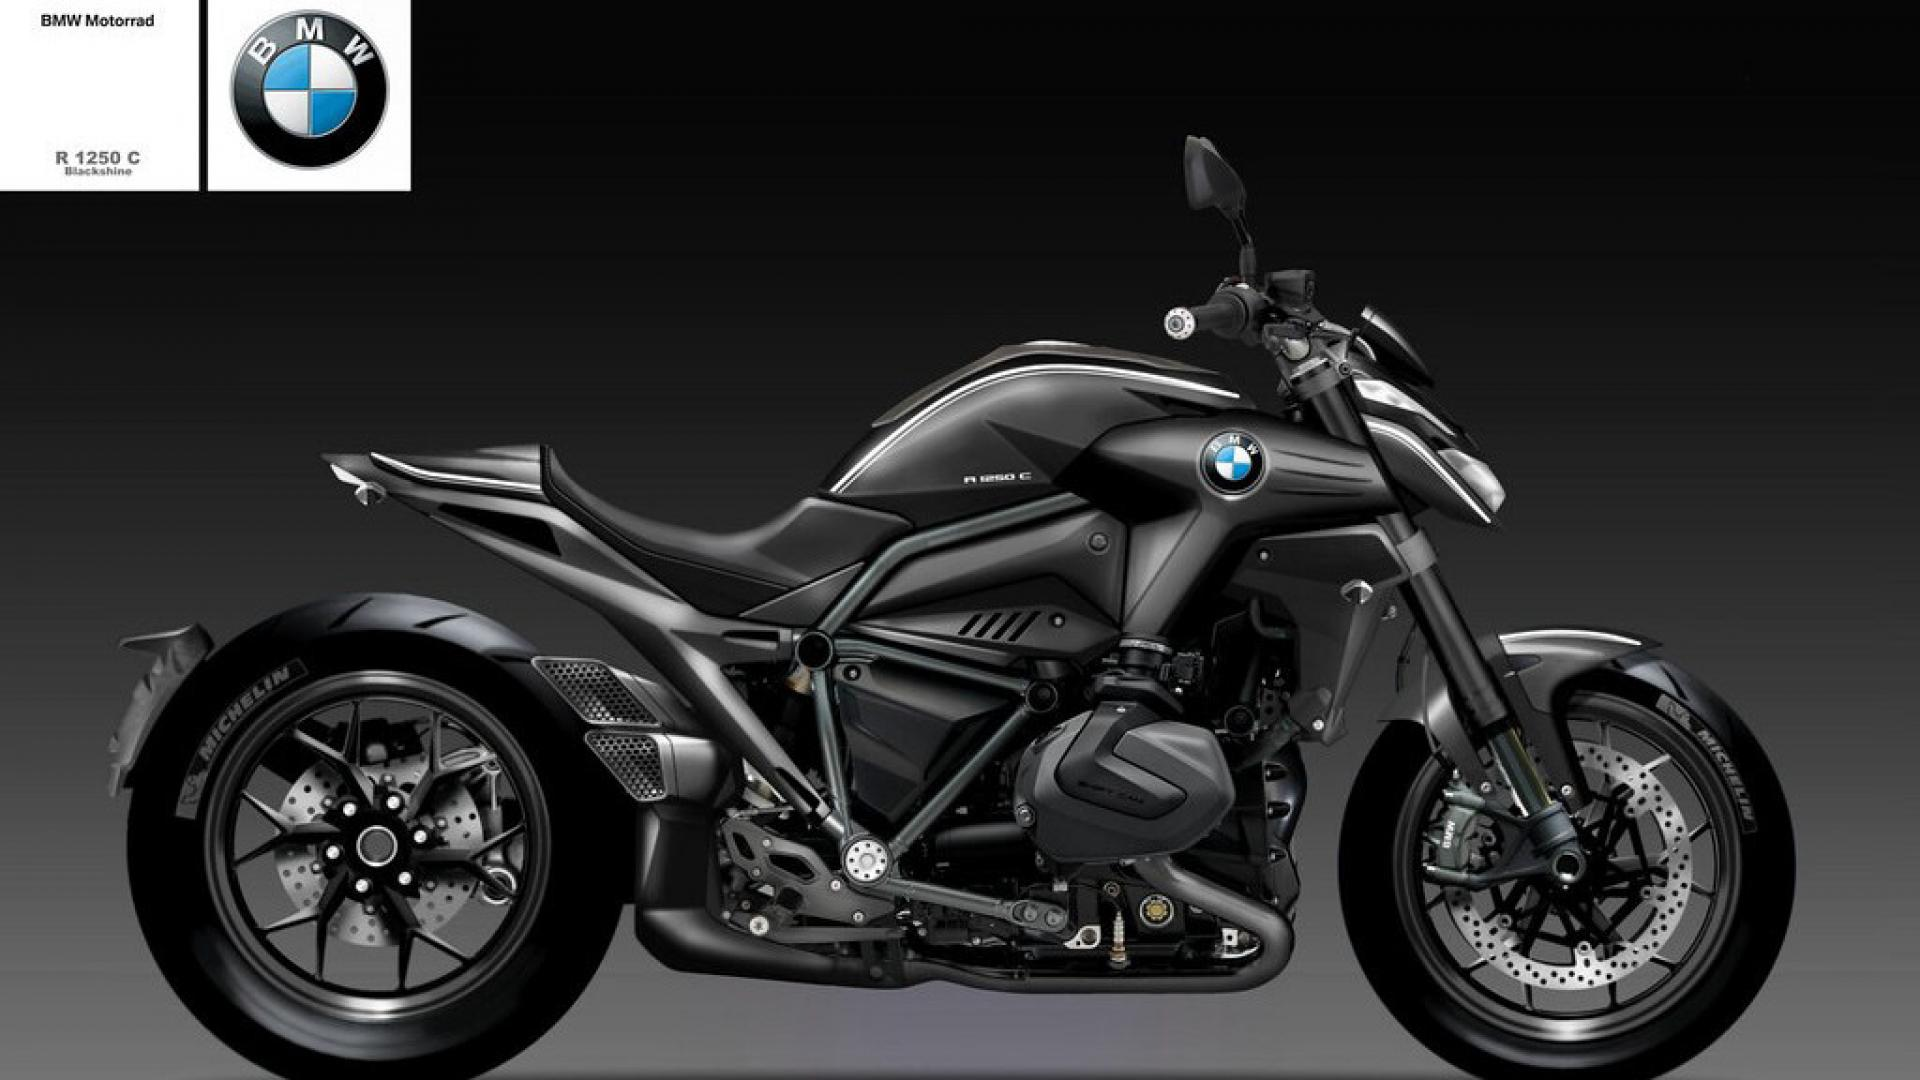 BMW R1250C Blackshine